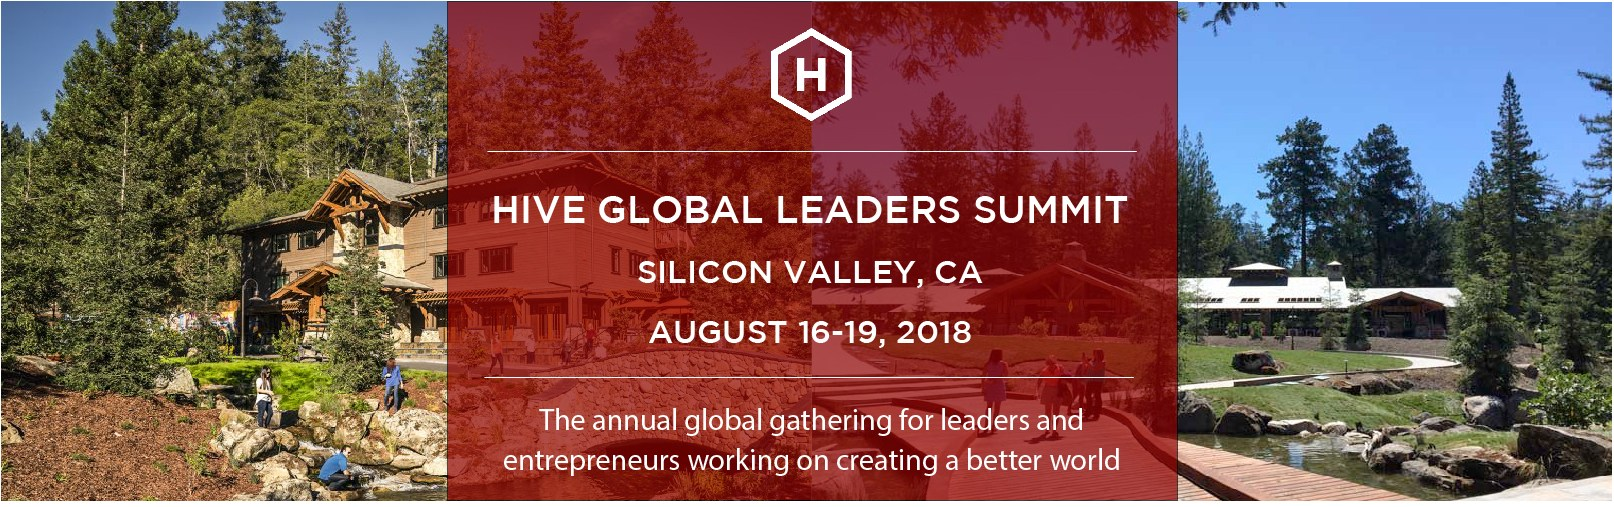 Hive-Global-Summit1